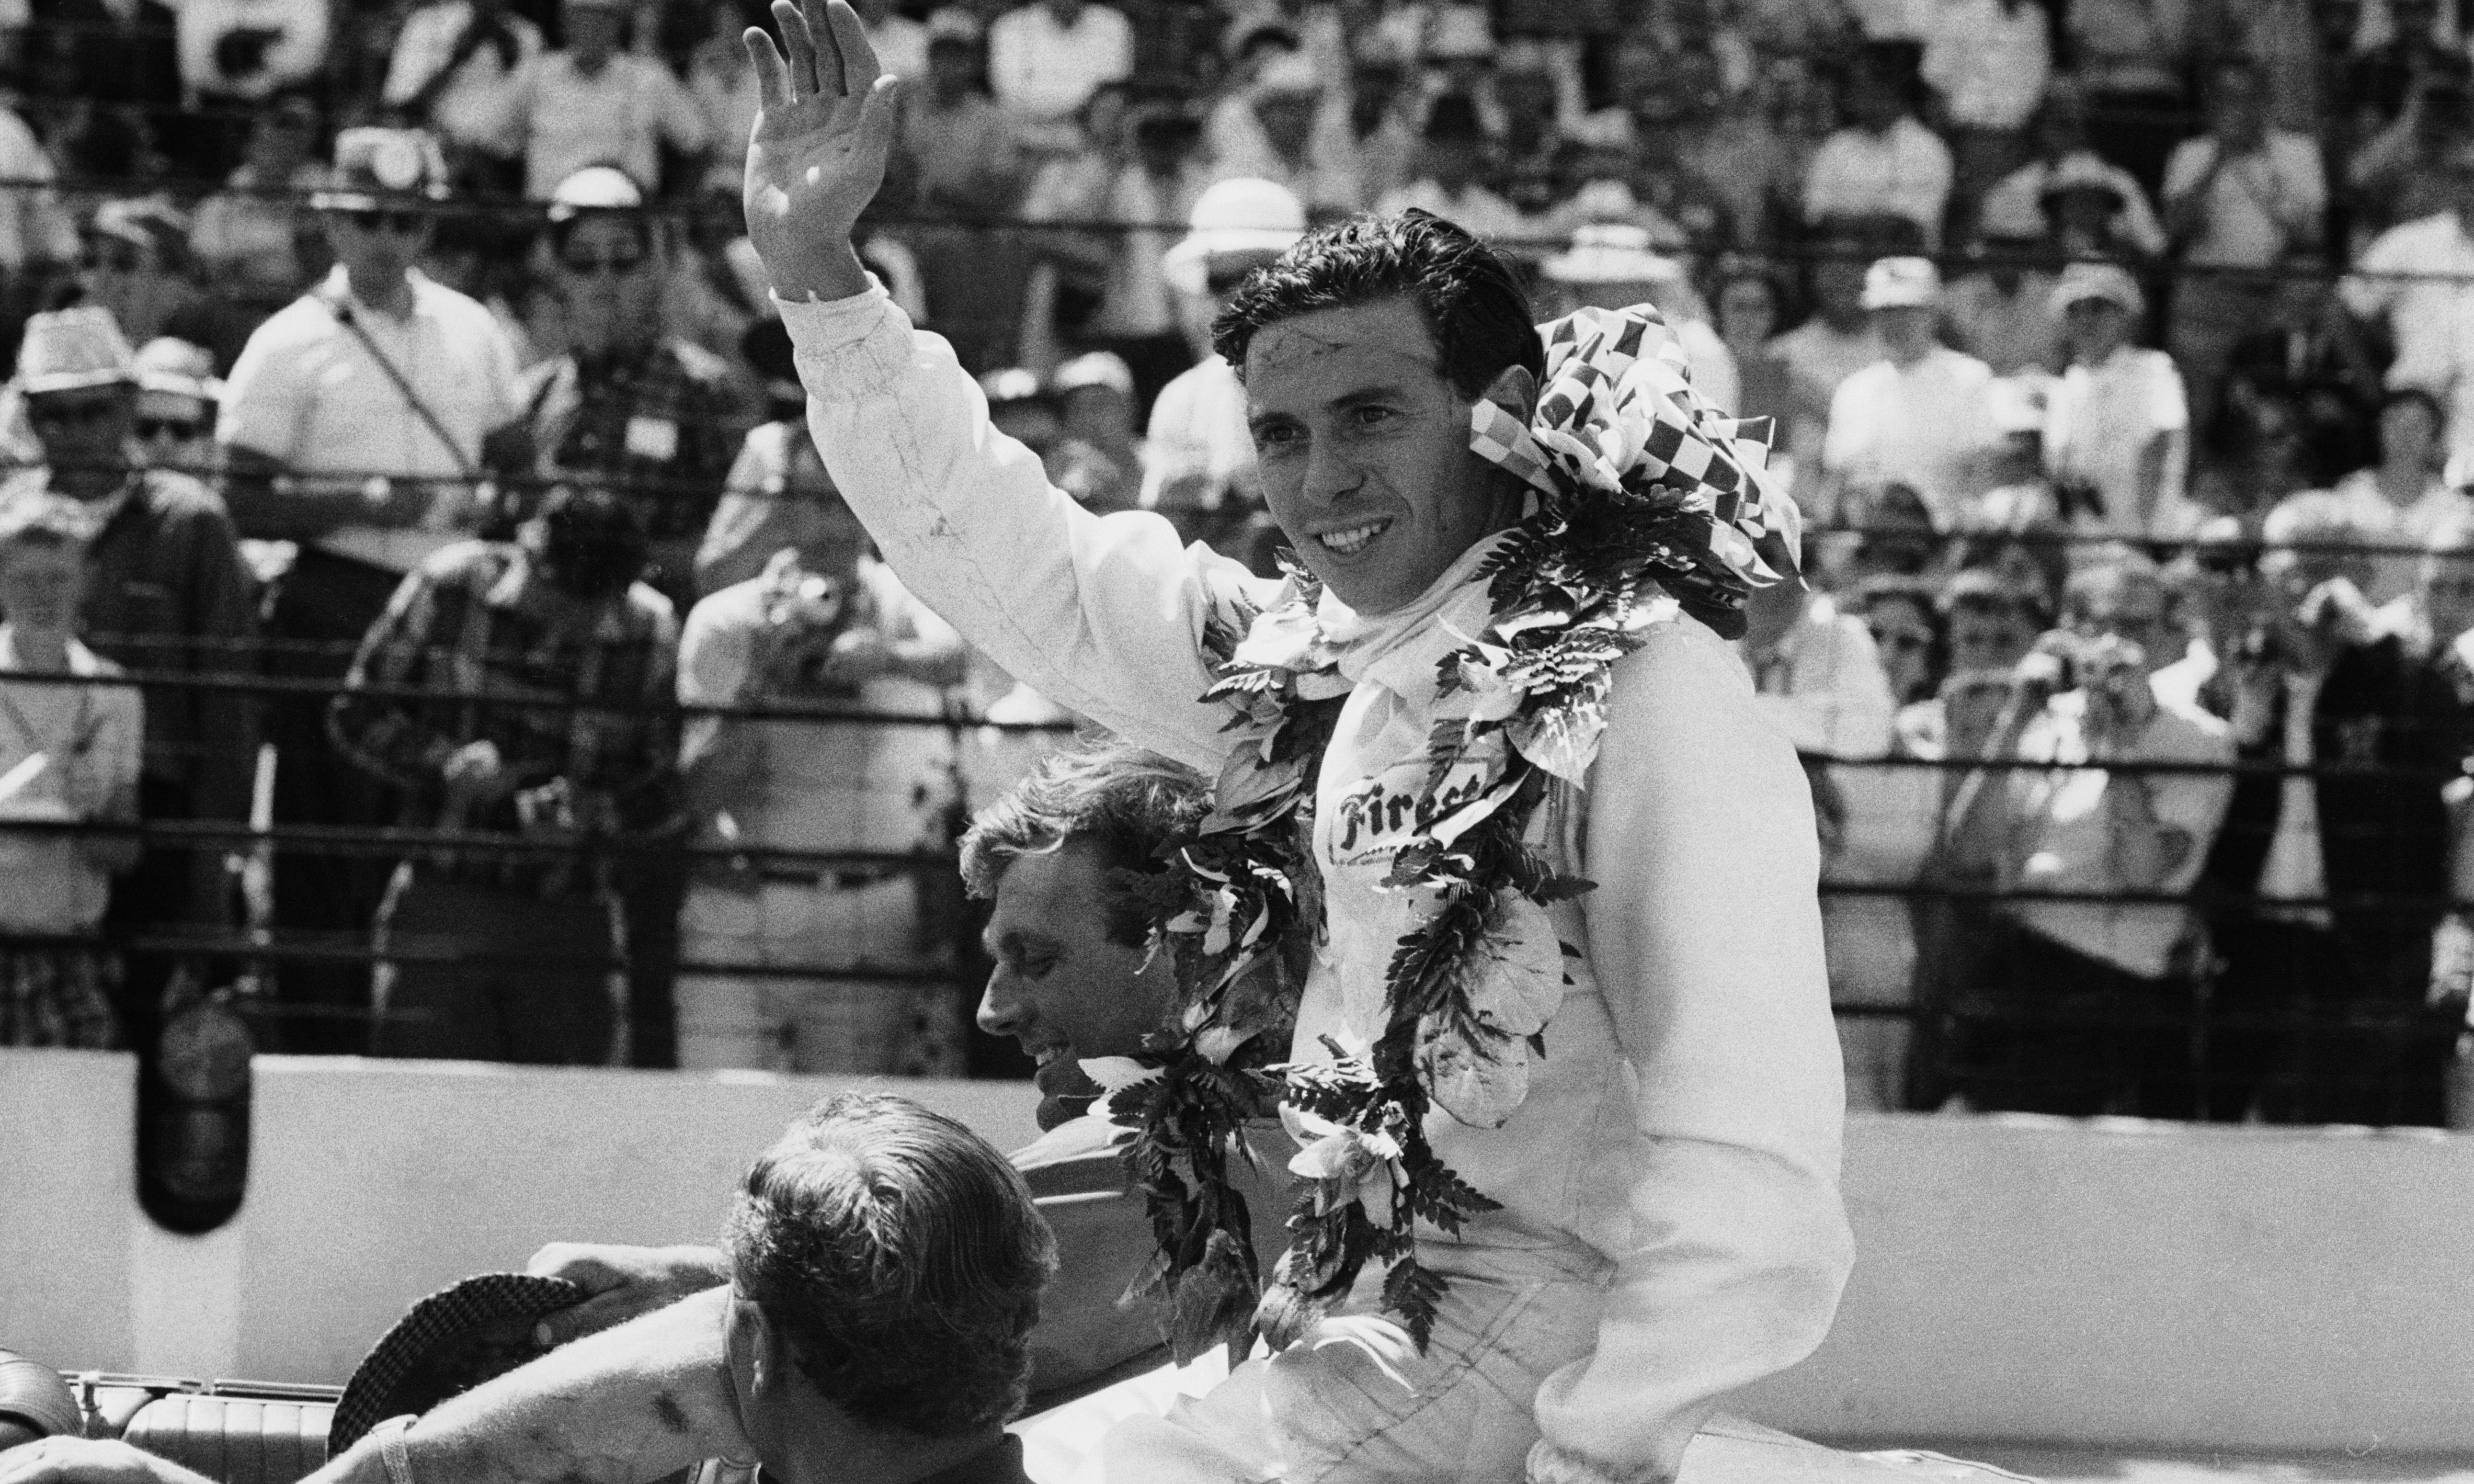 Jim Clark, the indecisive farmer who was transformed behind a wheel